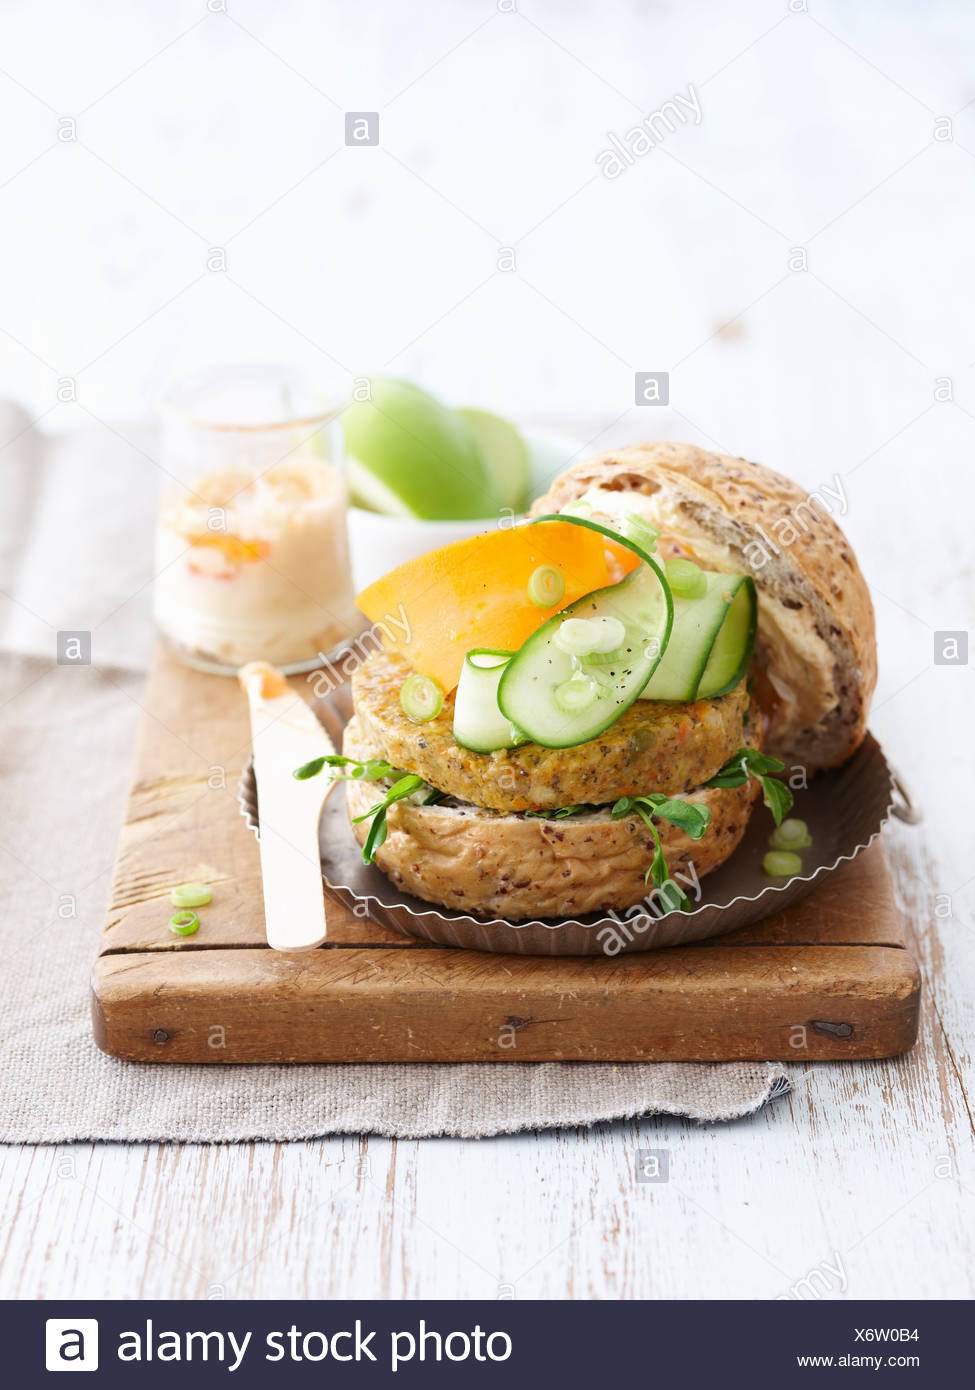 Sandwich with vegetarian patty - Stock Image